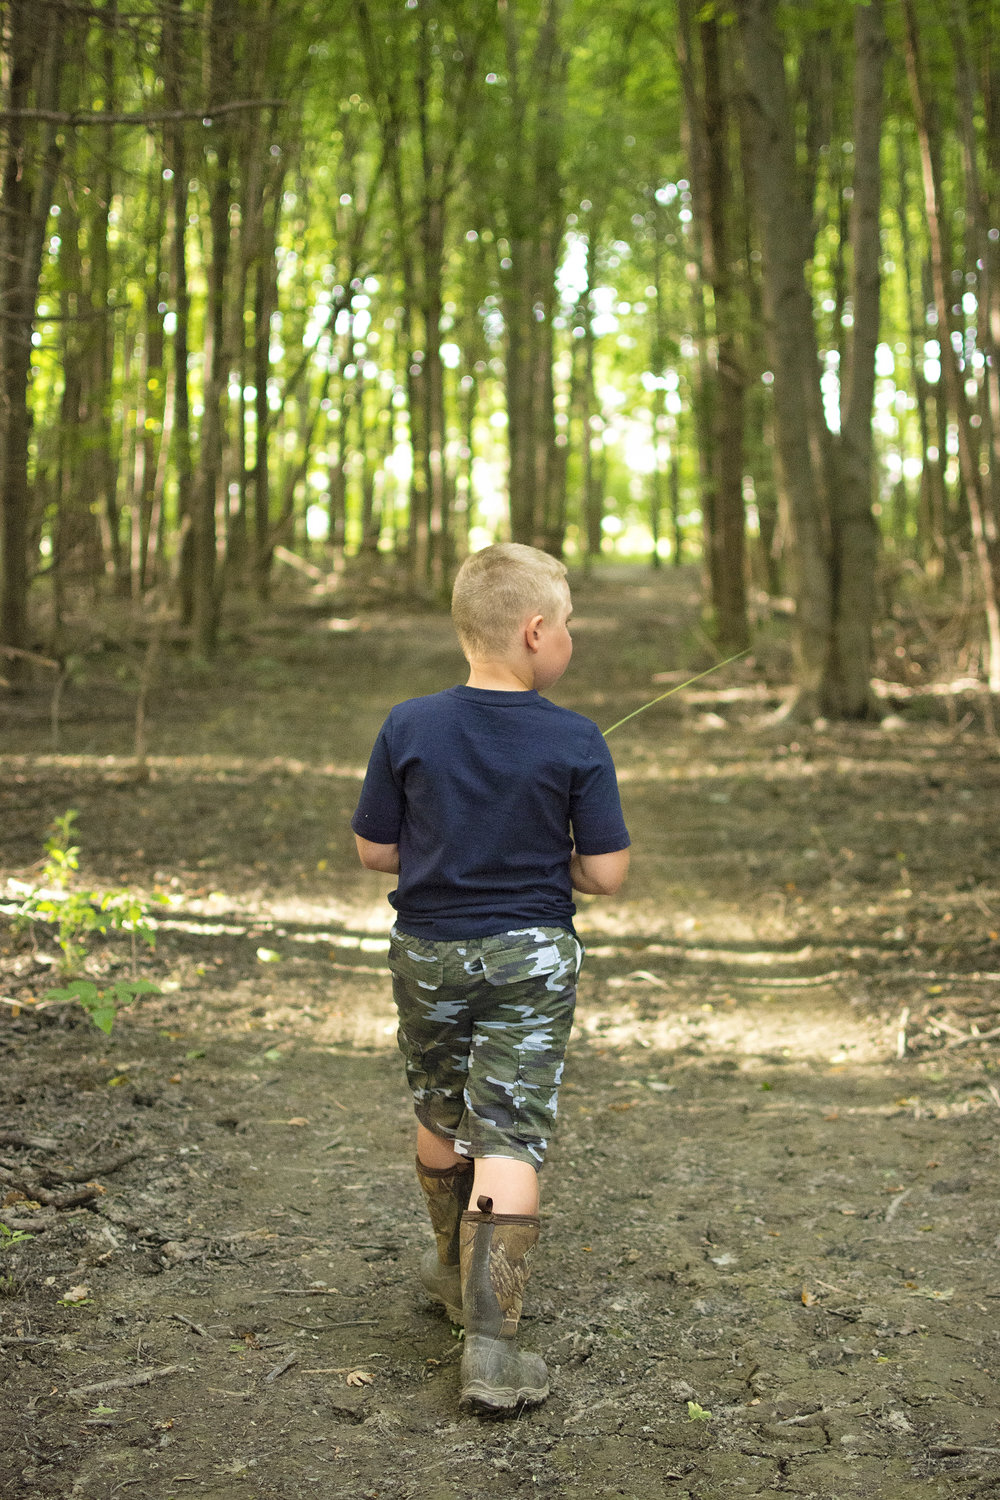 One of Braedan's favorite things to do, exploring the woods.